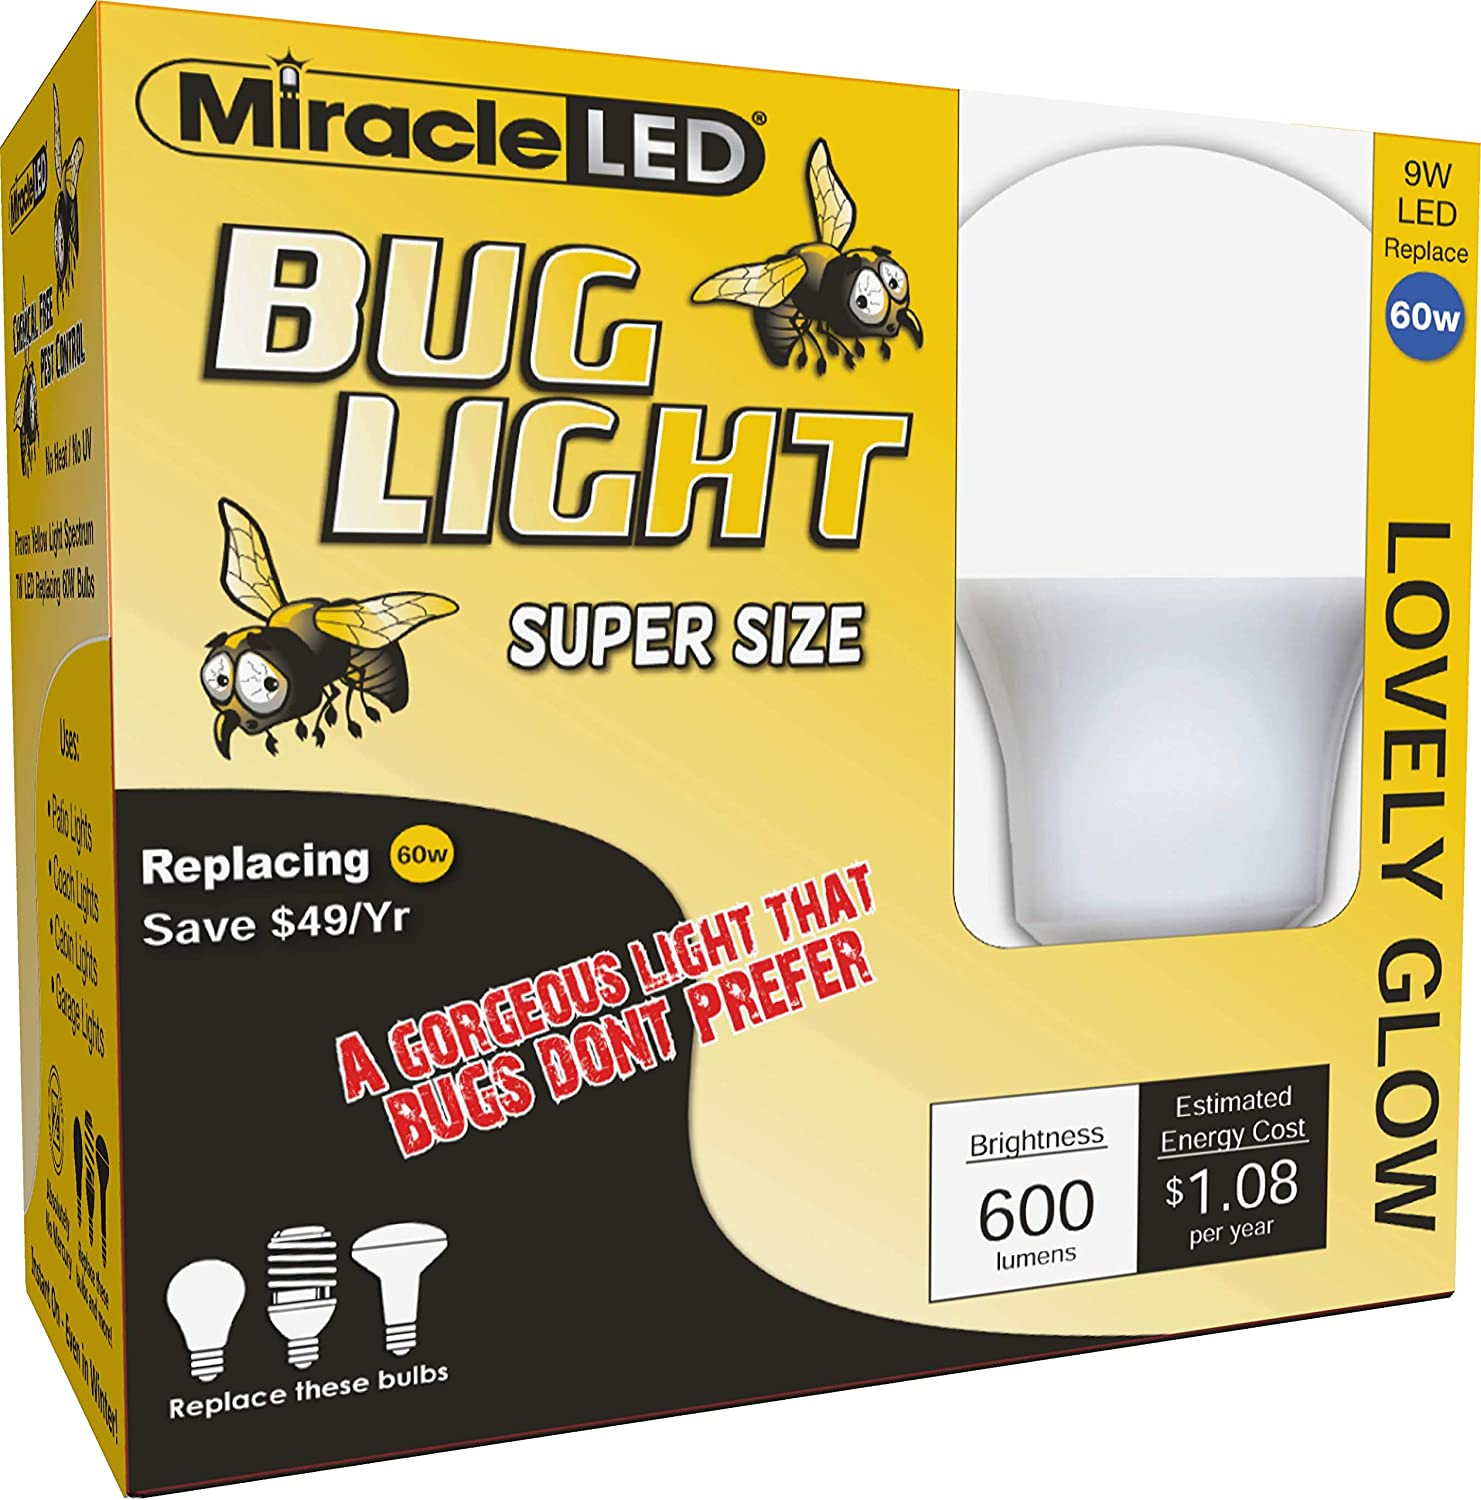 Miracle LED Lovely Glow Yellow LED Bug Light Bulb, Porch / Patio / Entry Way Outdoor Chemical Free Pest Control, Save Money - Replace 40W / 60W / 75W / 100W, 2-Pack (606014)